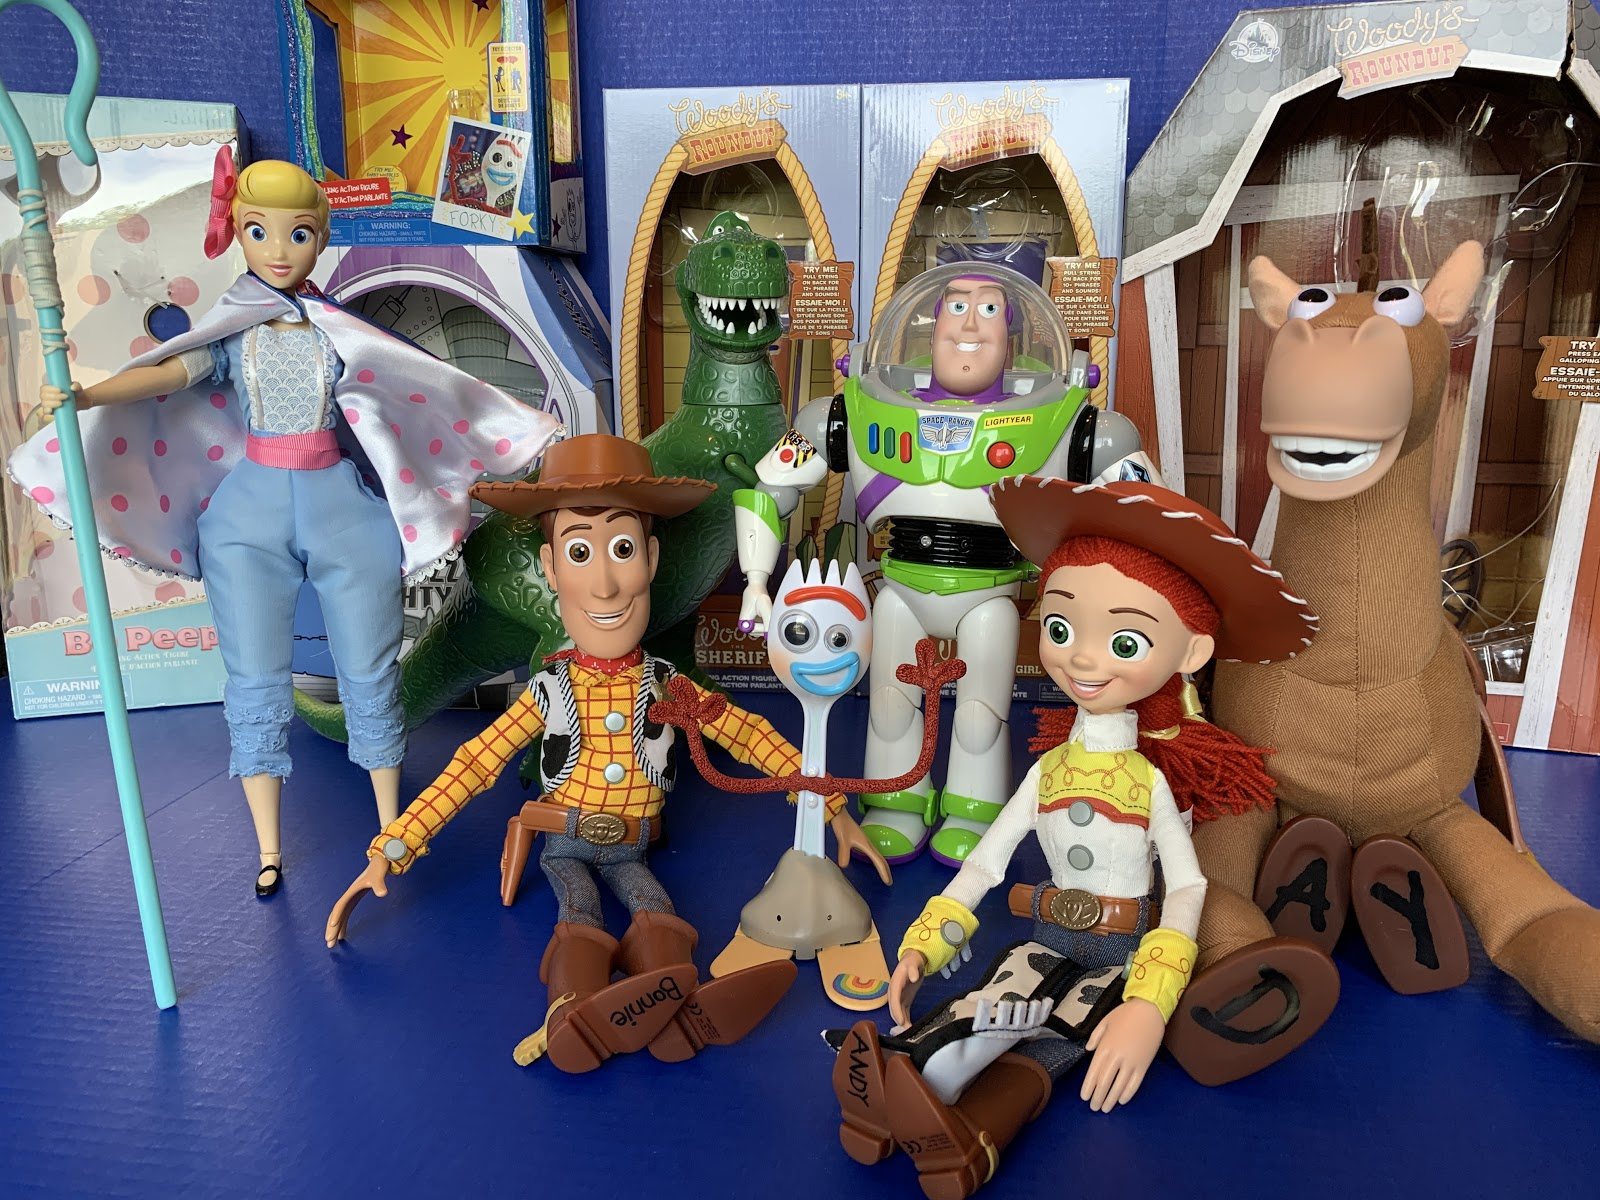 """Toy Review: """"Toy Story 4"""" Interactive Talking Action Figures from Disney  Store - LaughingPlace.com"""